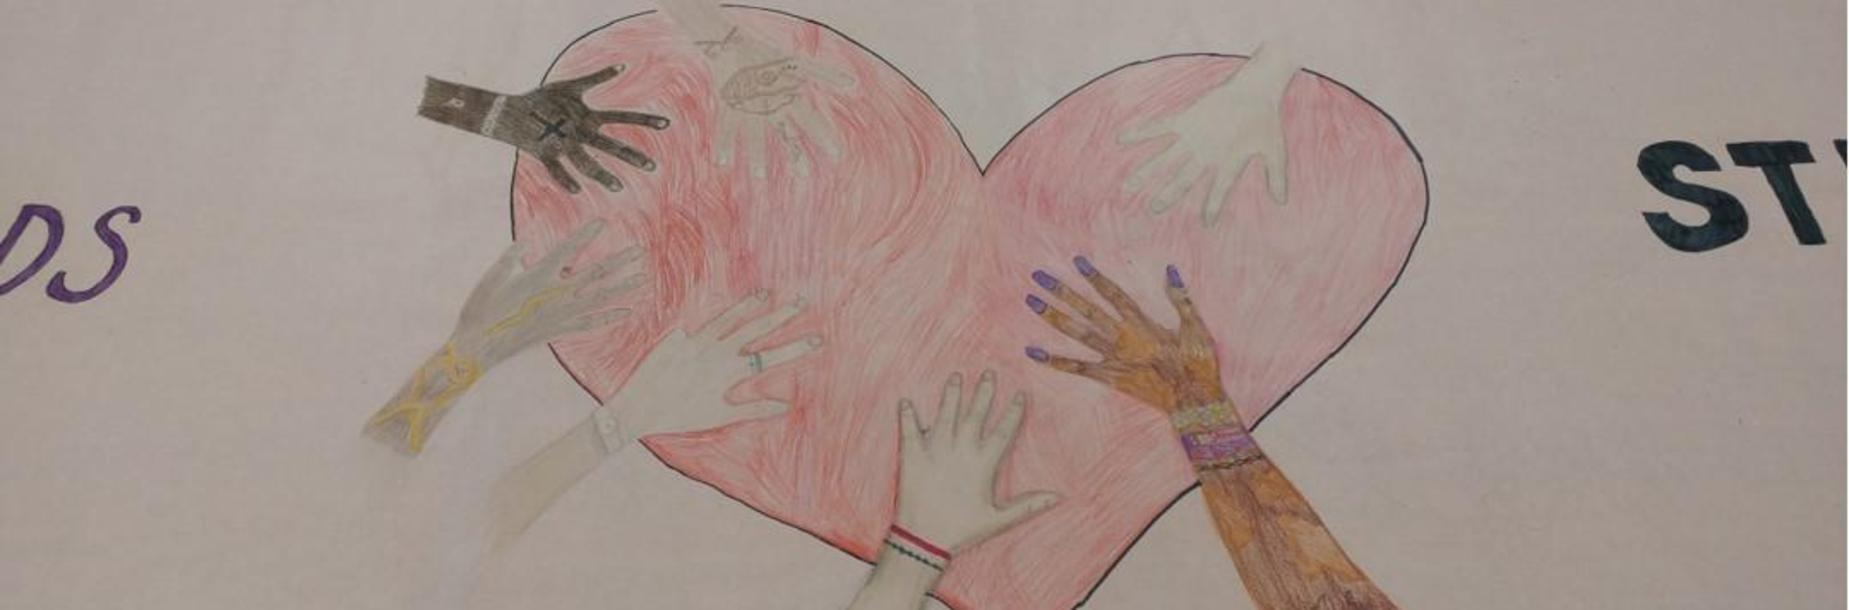 Student artwork heart with hands